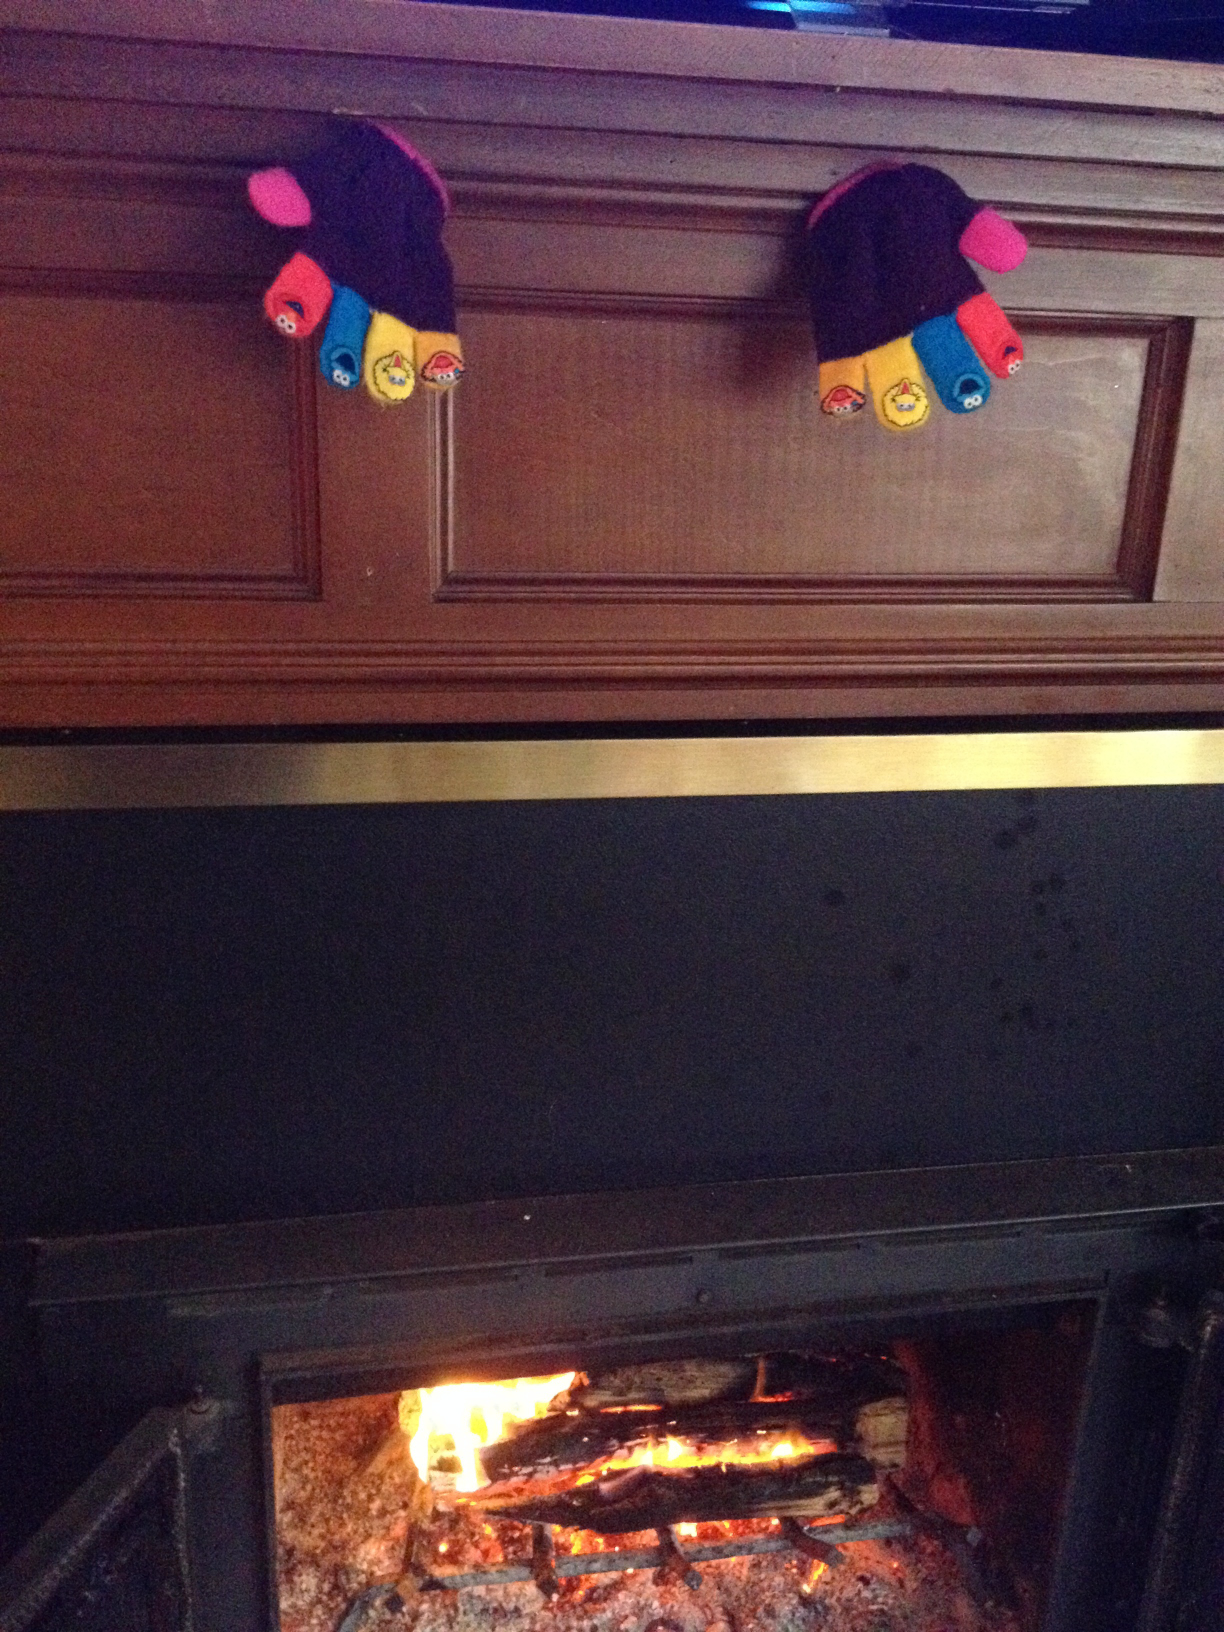 Rhema Gloves Heating near Fireplace Jan 2014 SNAG-0006